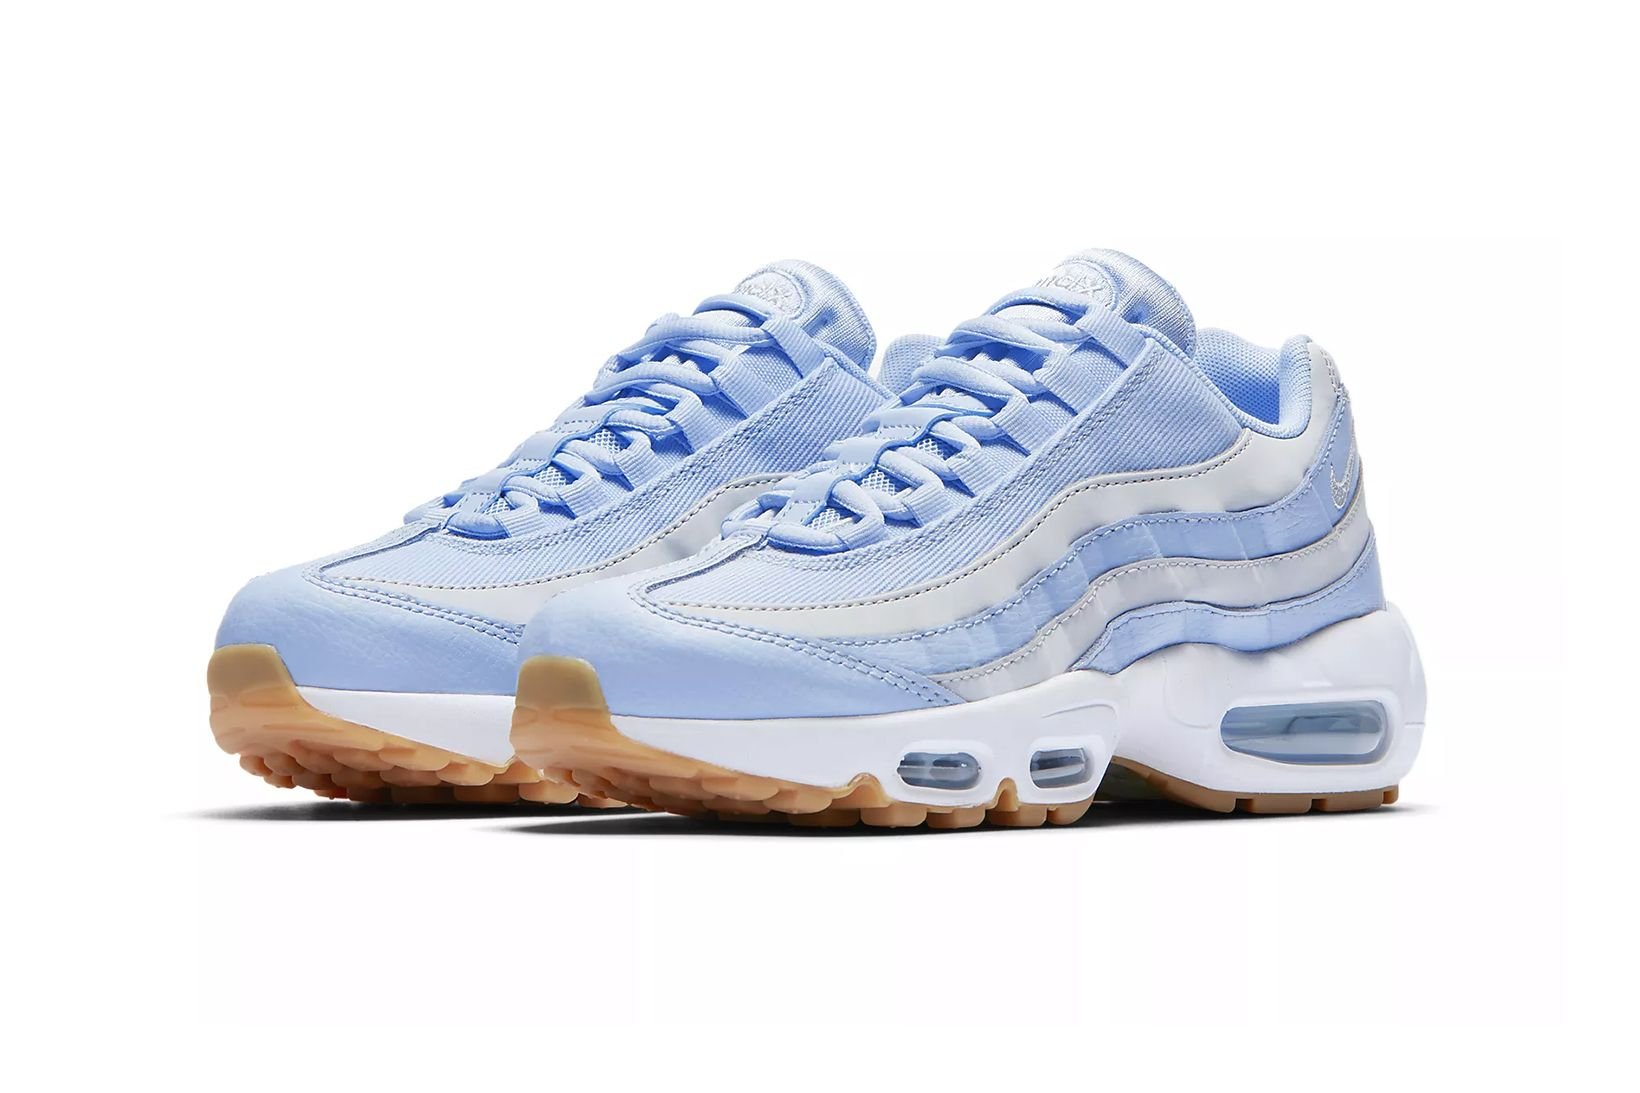 ea3d64d2152 Nike's Baby Blue Air Max 95 Is Fresher Than Ever Before in 2019 ...